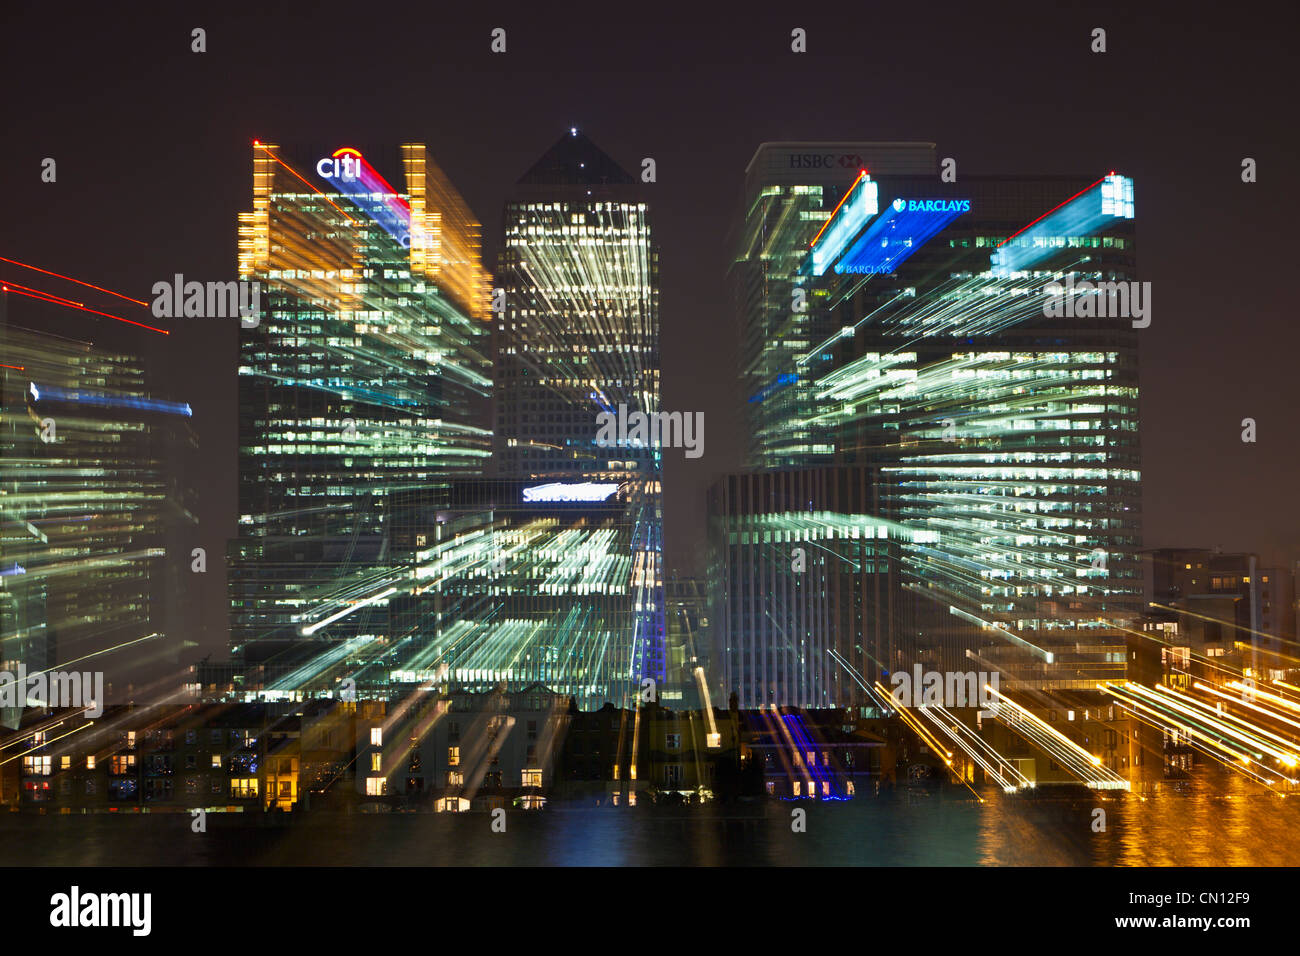 Canary Wharf financial district with a zoom burst effect, London, UK - Stock Image